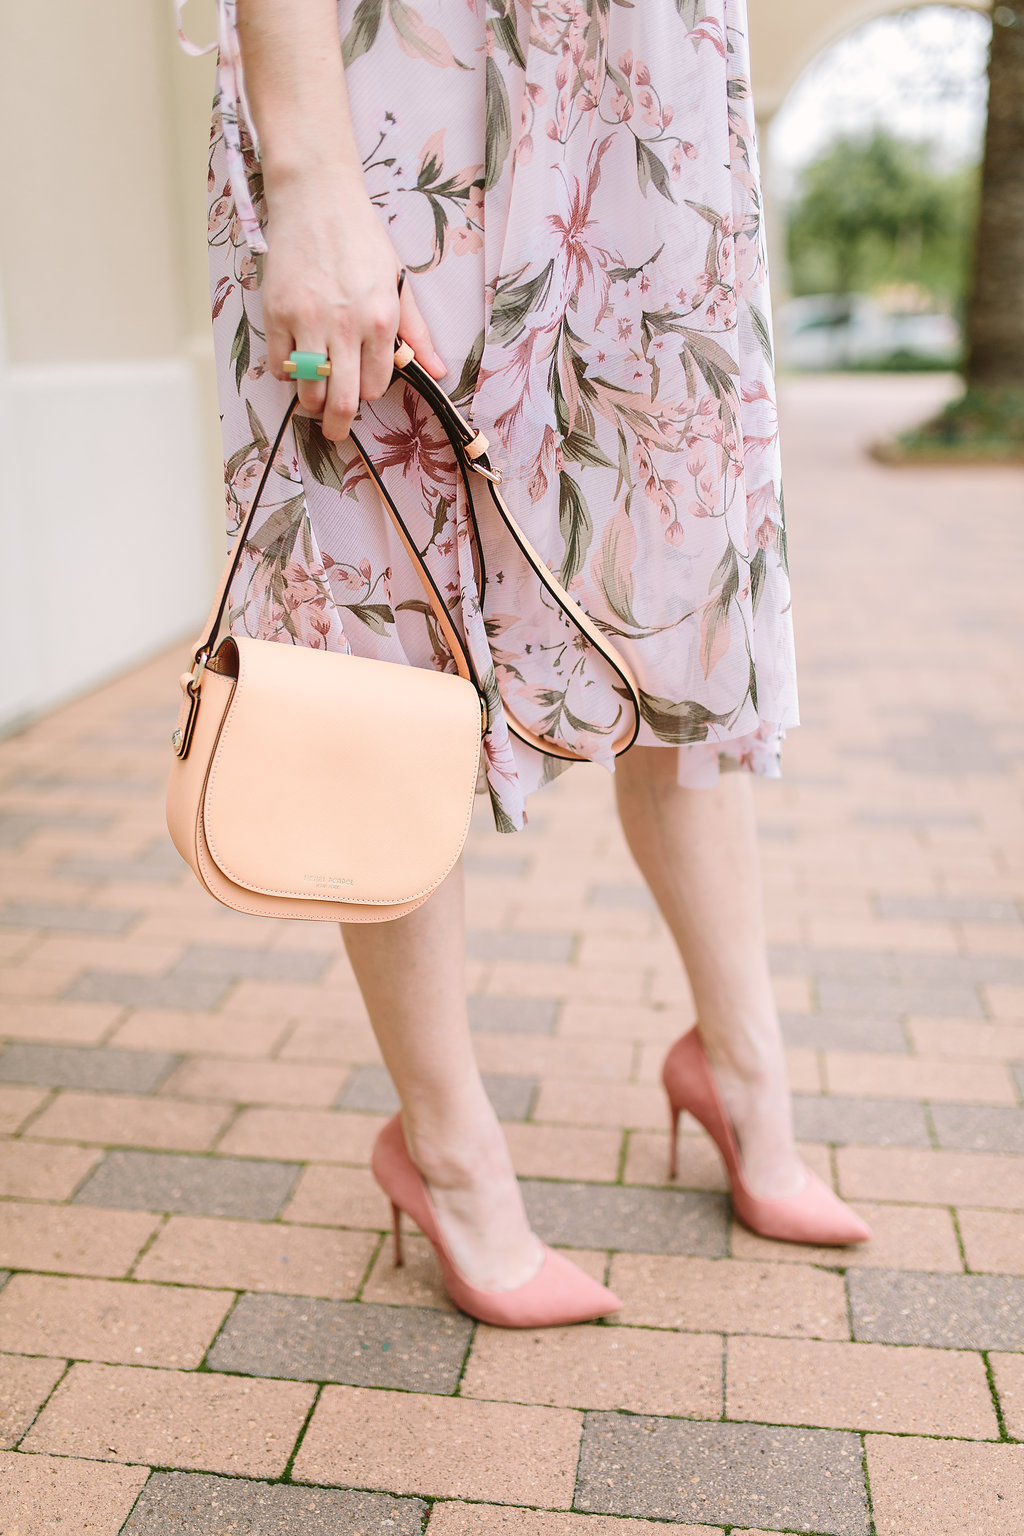 Houston fashion blogger Uptown With Elly Brown wears a Henri Bendel crossbody bag